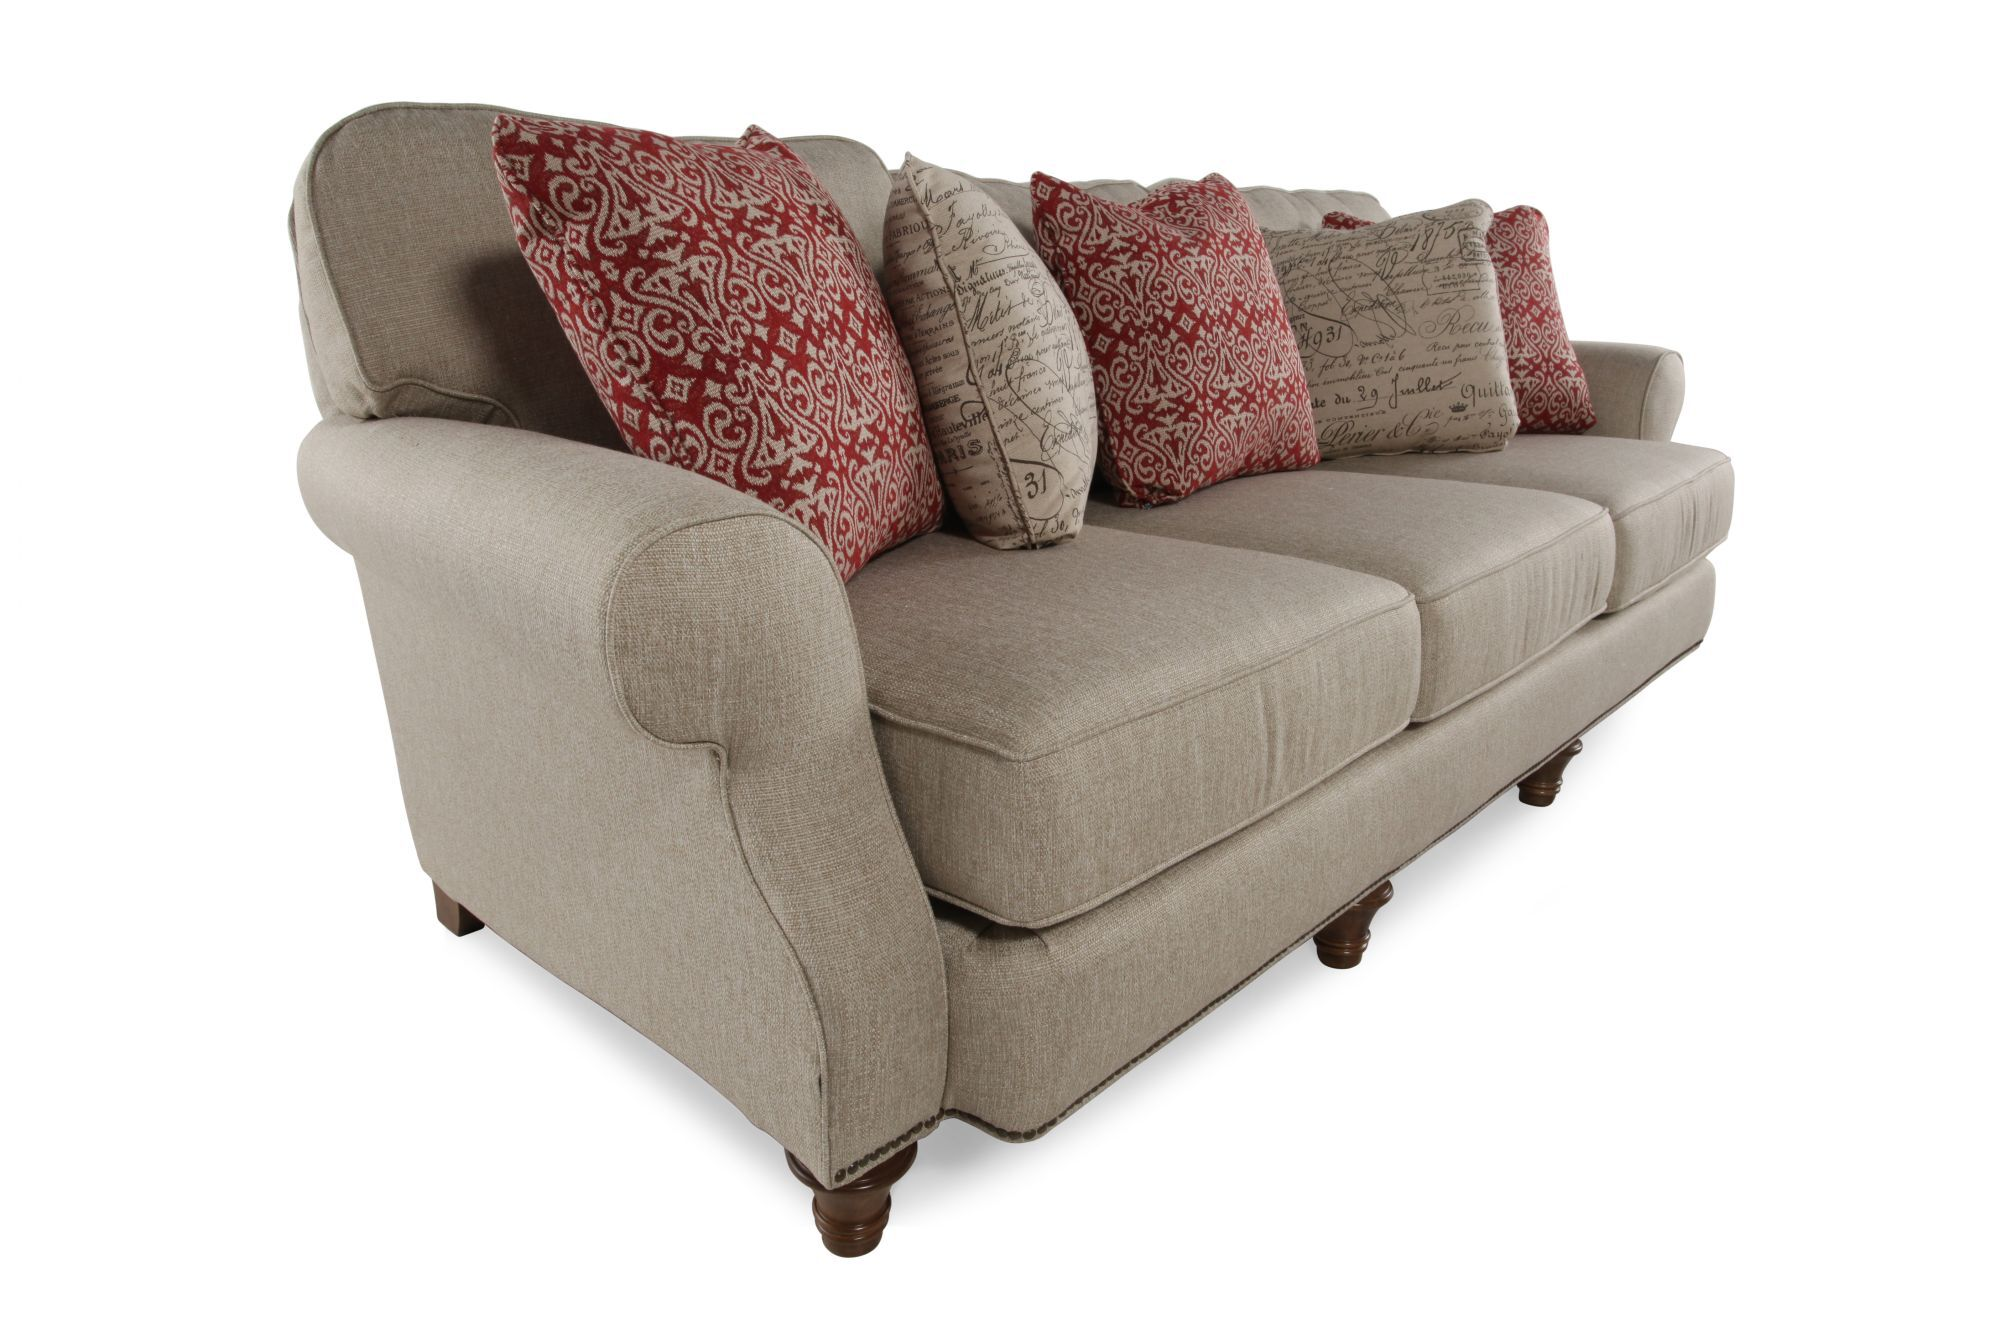 grey carleton nailhead sofa tommy bahama sectional accented 98 quot rolled arm in gray mathis